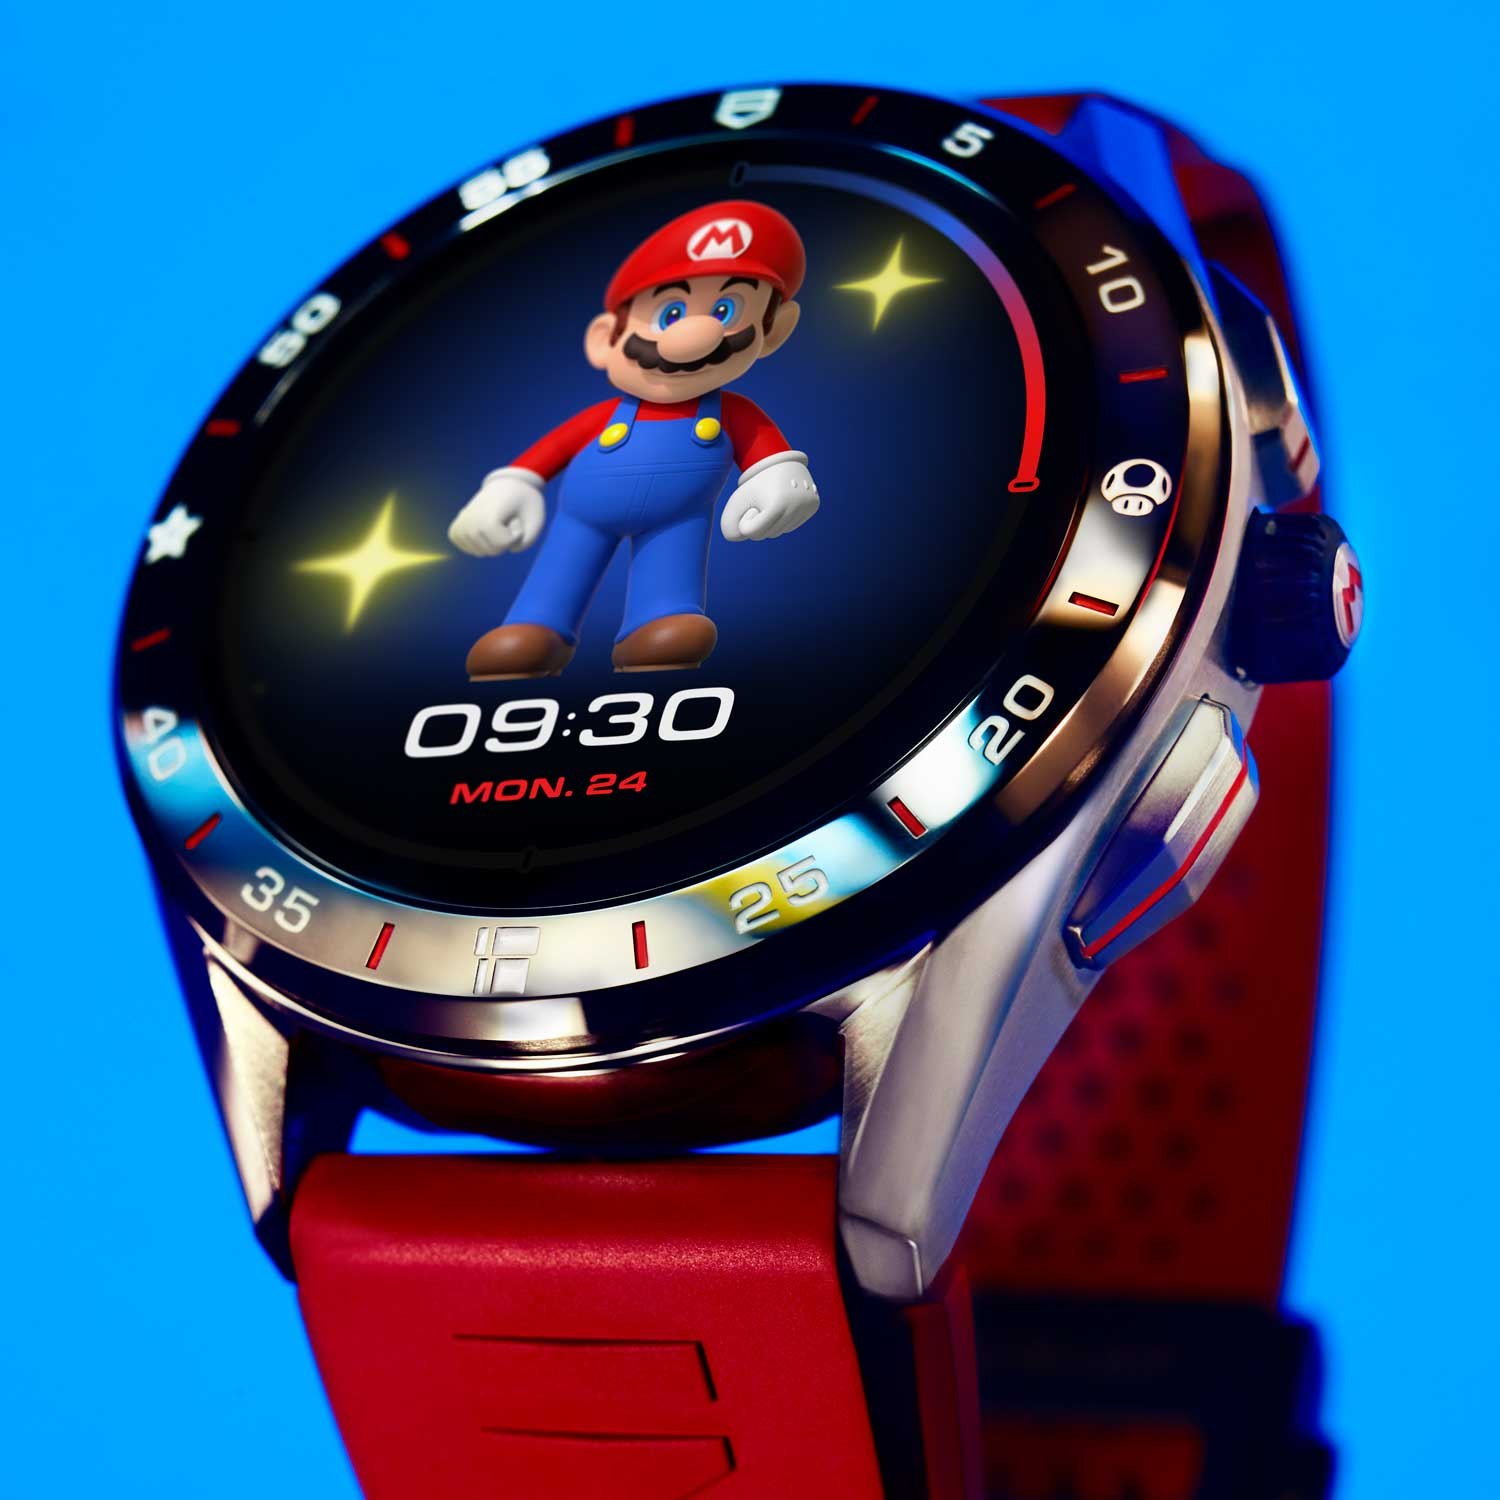 The watch's bezel displays Super Mario's famous objects - at 3 o'clock is the Super Mushroom that makes Mario grow, at 6 o'clock is the Pipe that allows him to travel fast and at 9 o'clock is the Super Star that makes him invincible.